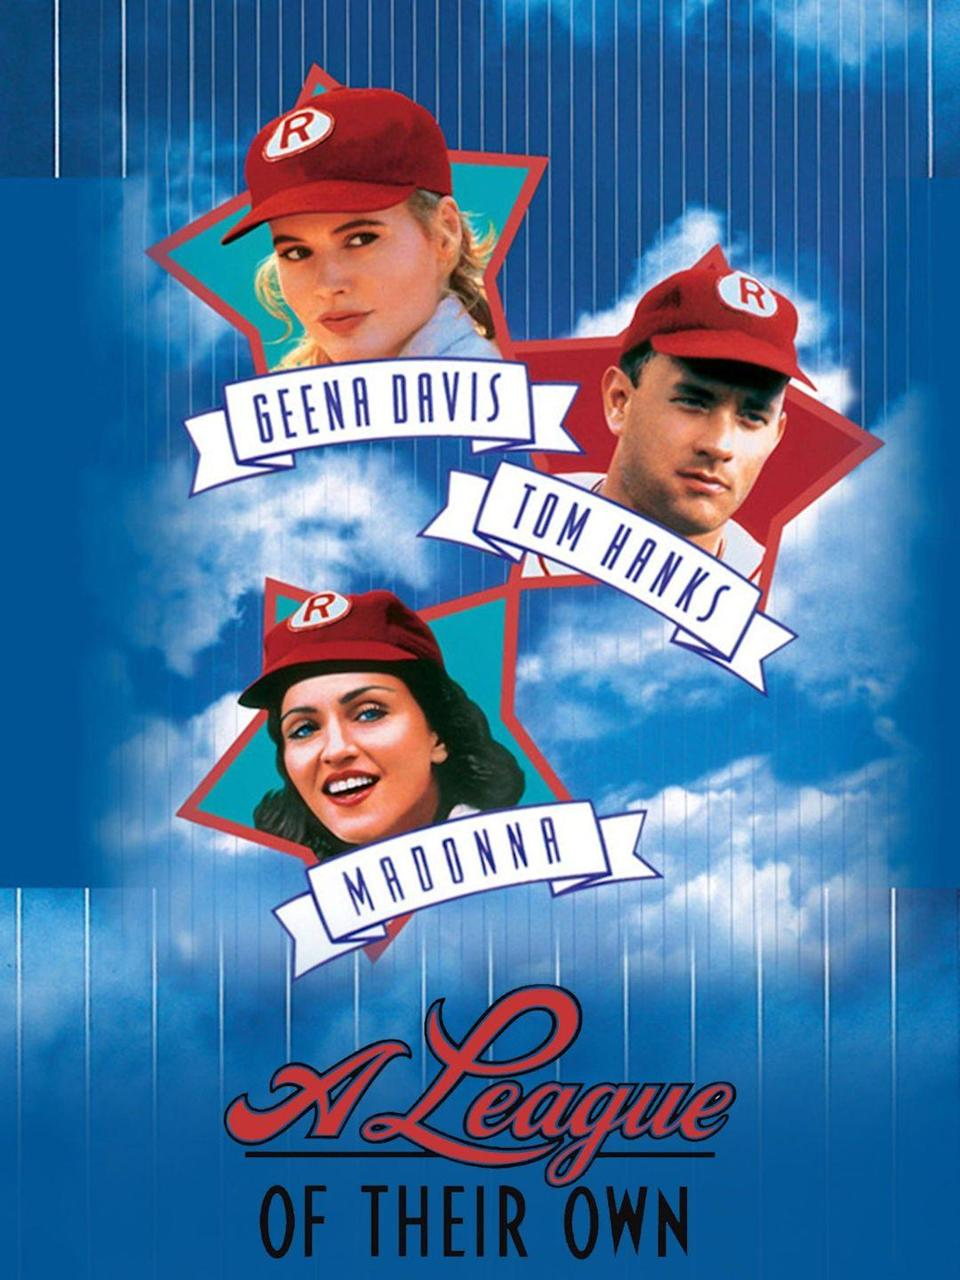 """<p>This classic film tells the story of a women's professional baseball team, assembled during World War II while many of the country's men were overseas. It's a great 4th of July movie the whole family can enjoy. </p><p><a class=""""link rapid-noclick-resp"""" href=""""https://www.amazon.com/League-Their-Own-Tom-Hanks/dp/B00190KZVY?tag=syn-yahoo-20&ascsubtag=%5Bartid%7C10070.g.36156094%5Bsrc%7Cyahoo-us"""" rel=""""nofollow noopener"""" target=""""_blank"""" data-ylk=""""slk:STREAM NOW"""">STREAM NOW</a><br><br></p>"""